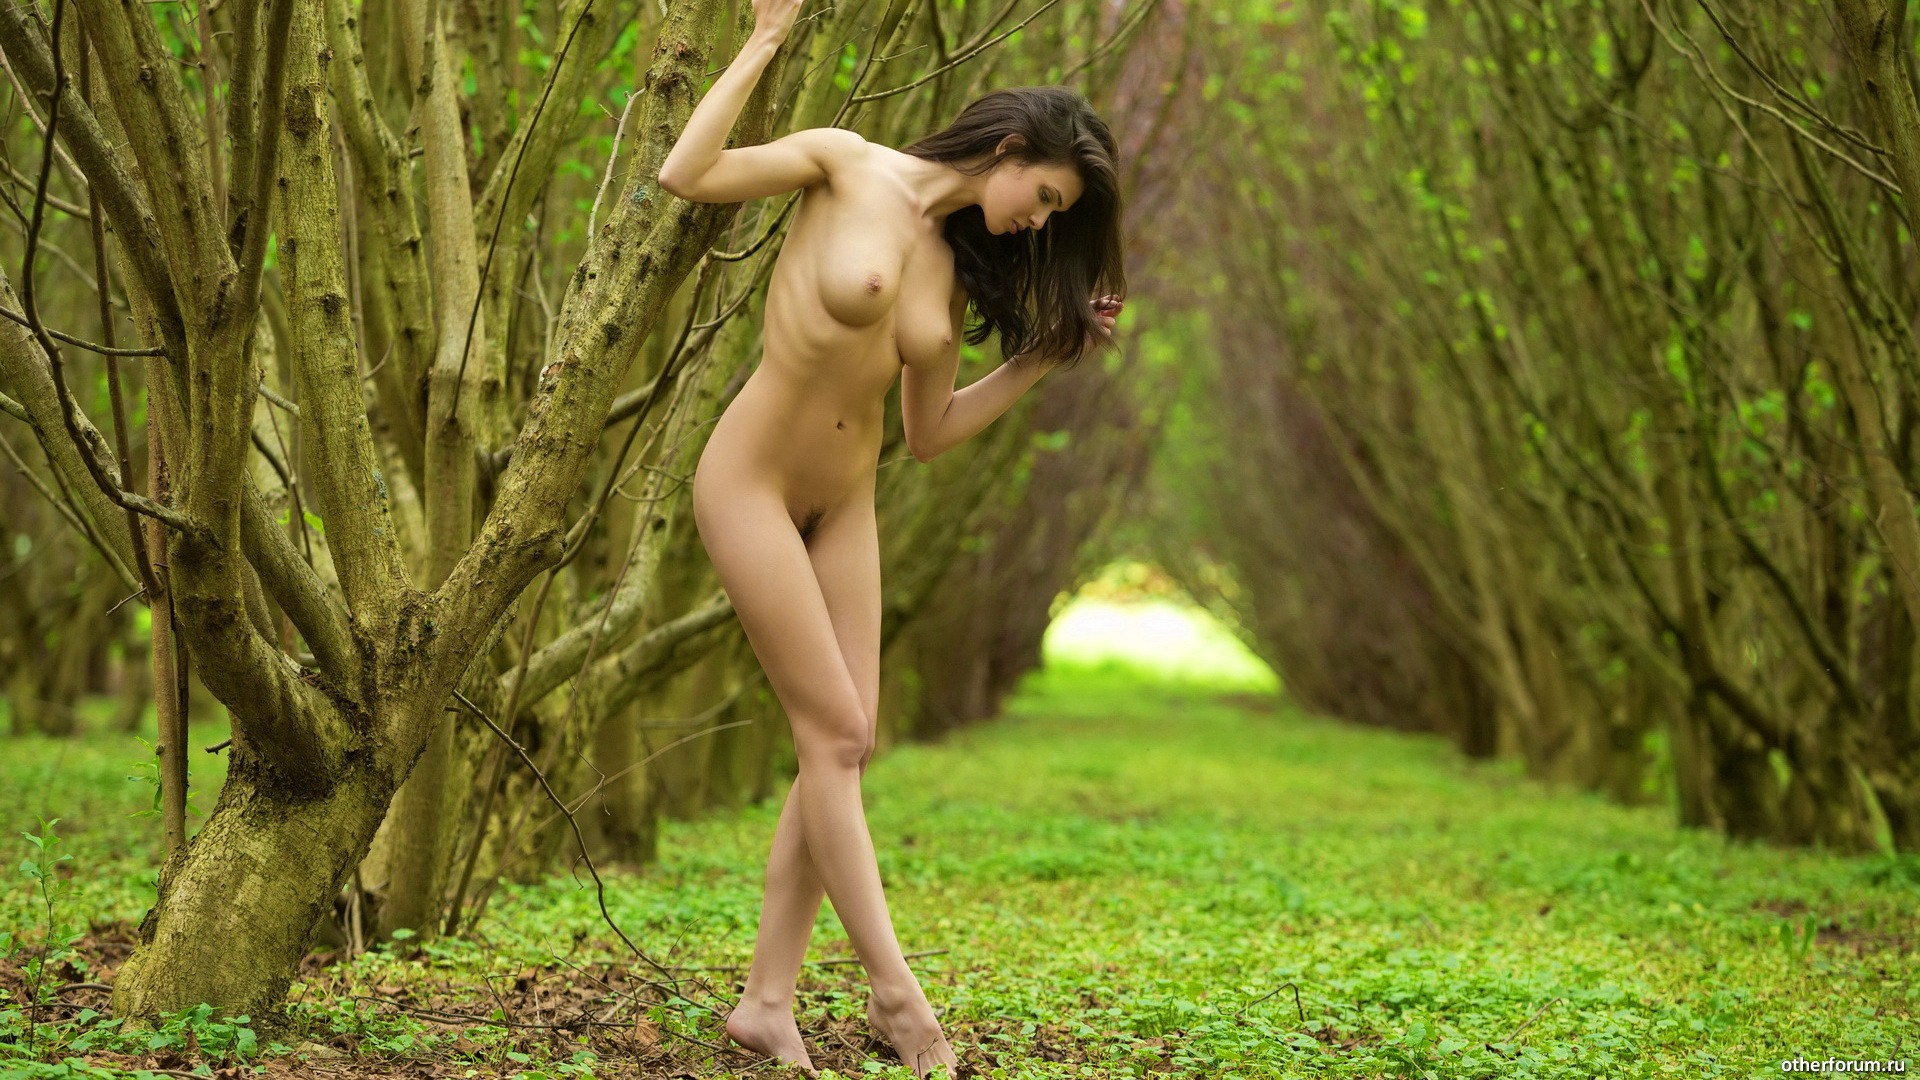 Nude in nature — pic 3